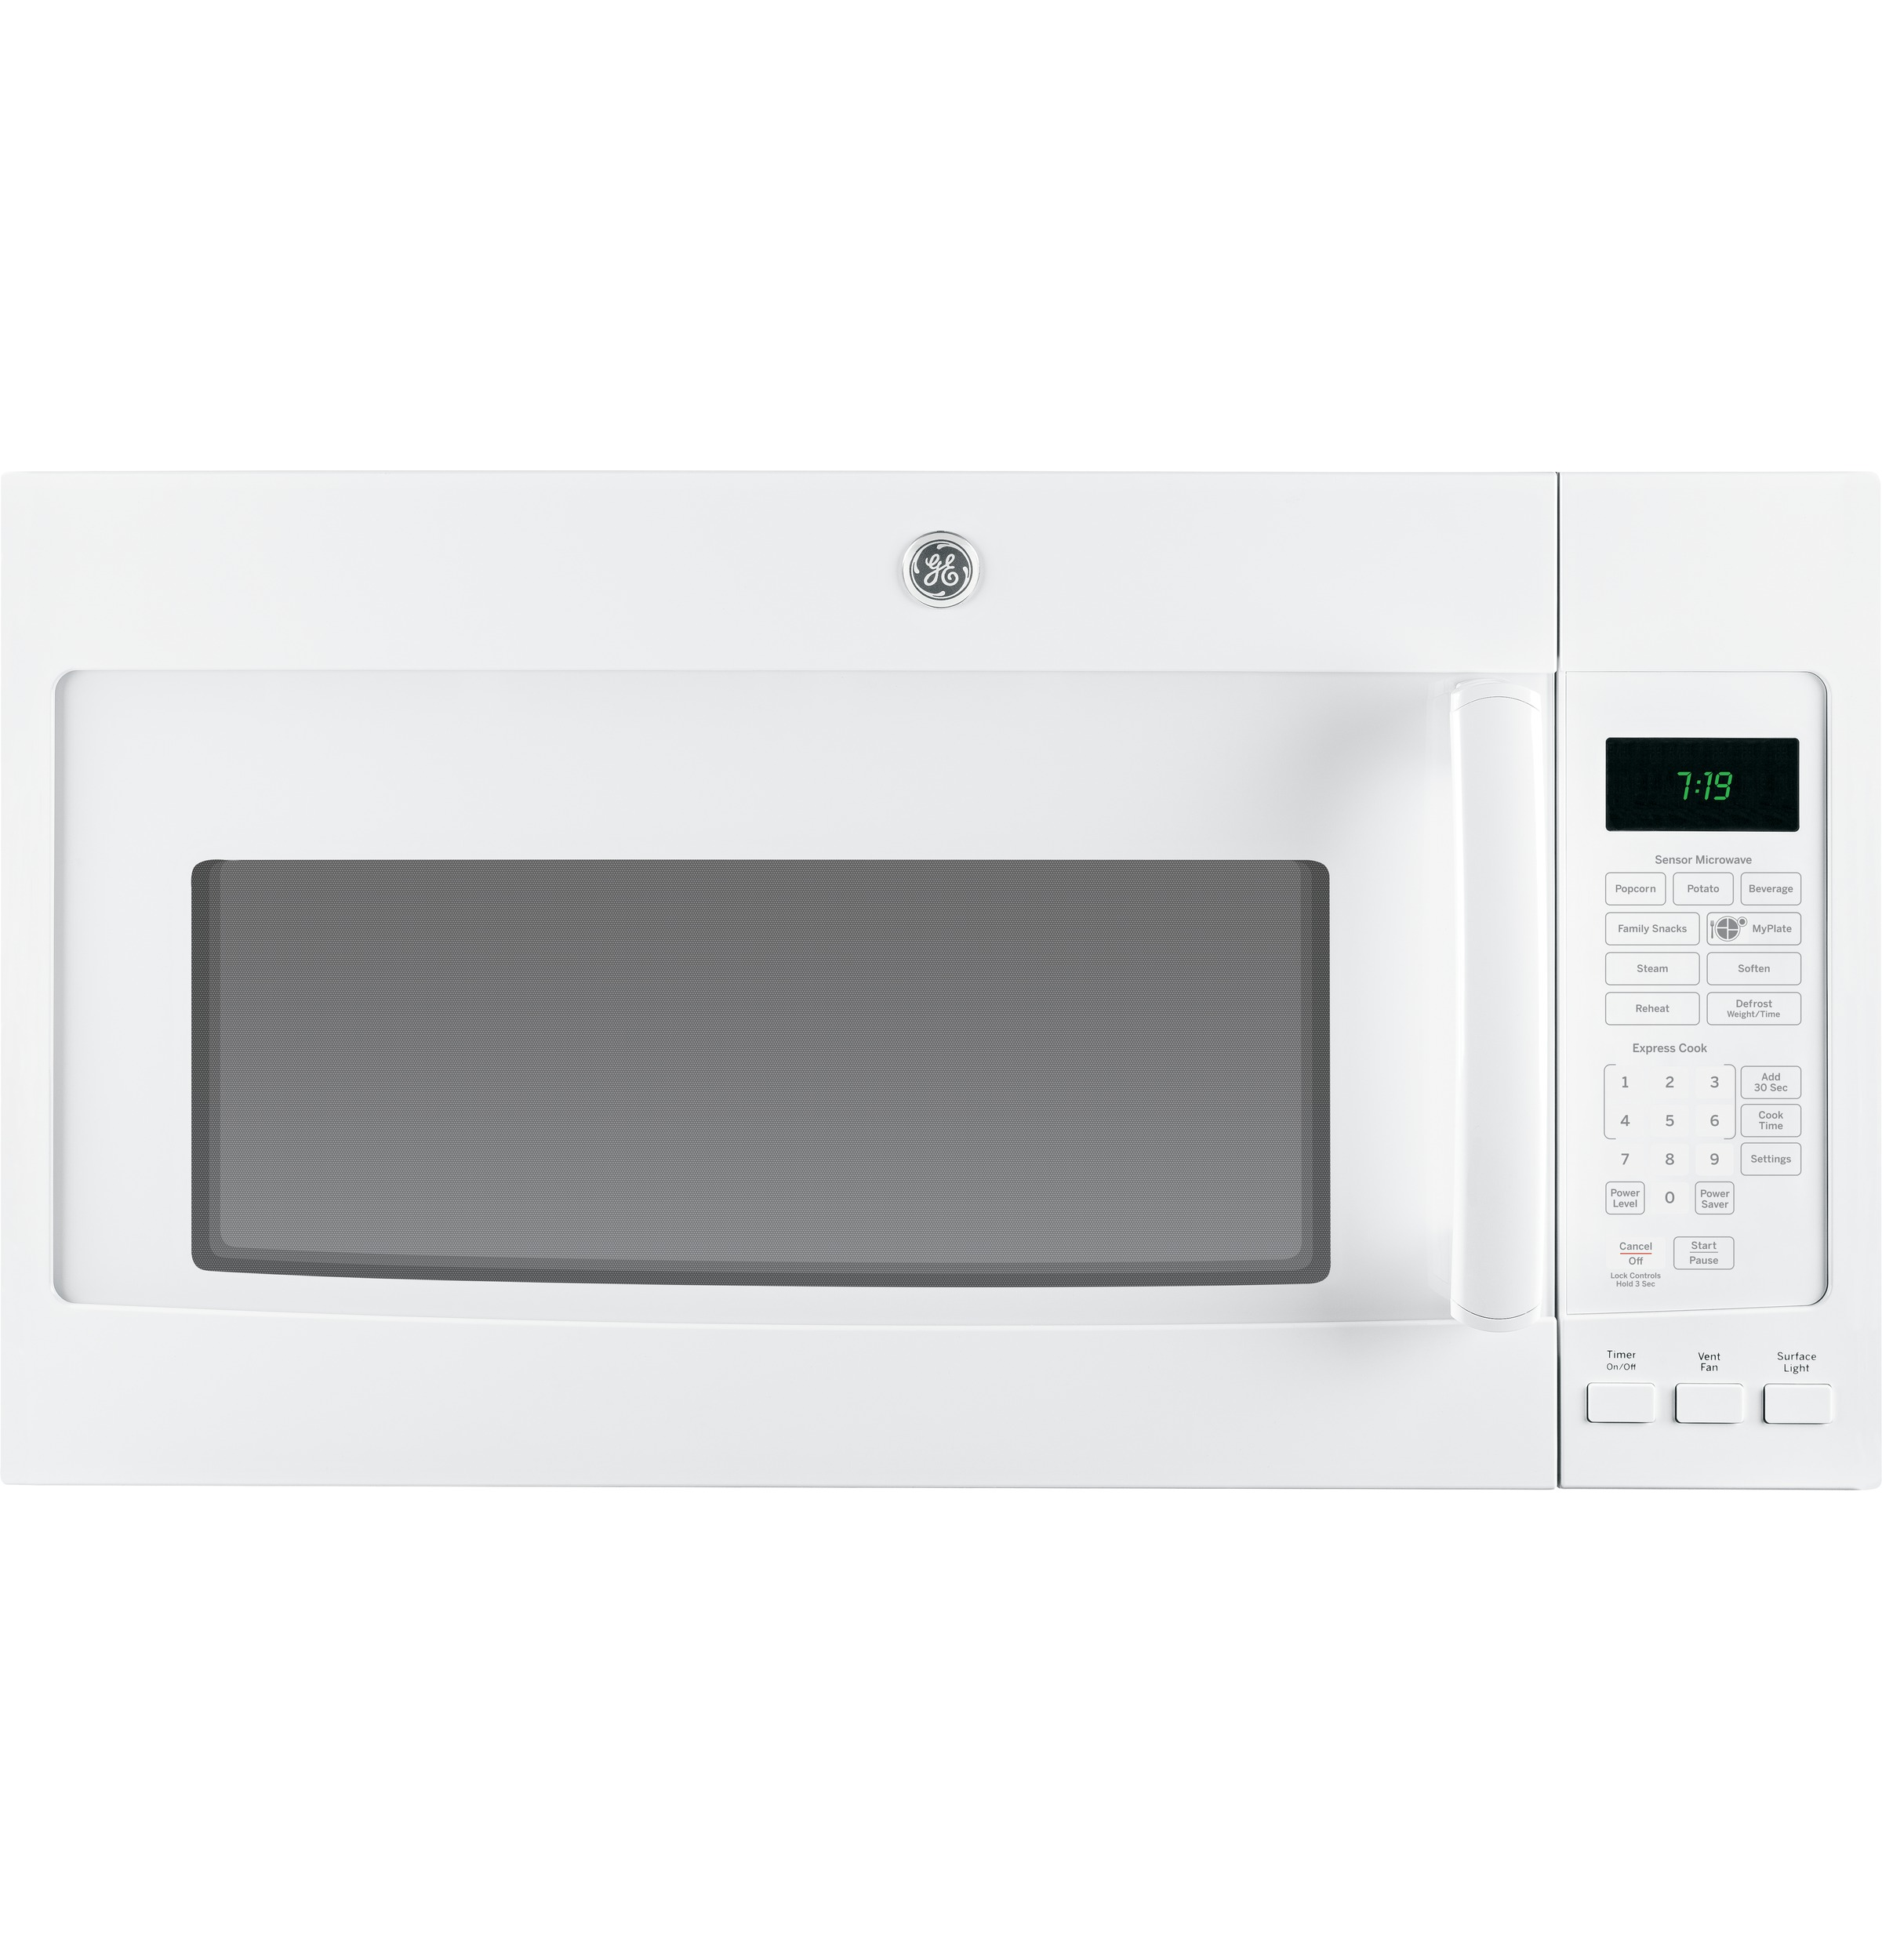 Ge Series 19 Cu Ft Over The Range Sensor Microwave Oven Rack Saver Switch Wiring Diagram Product Image